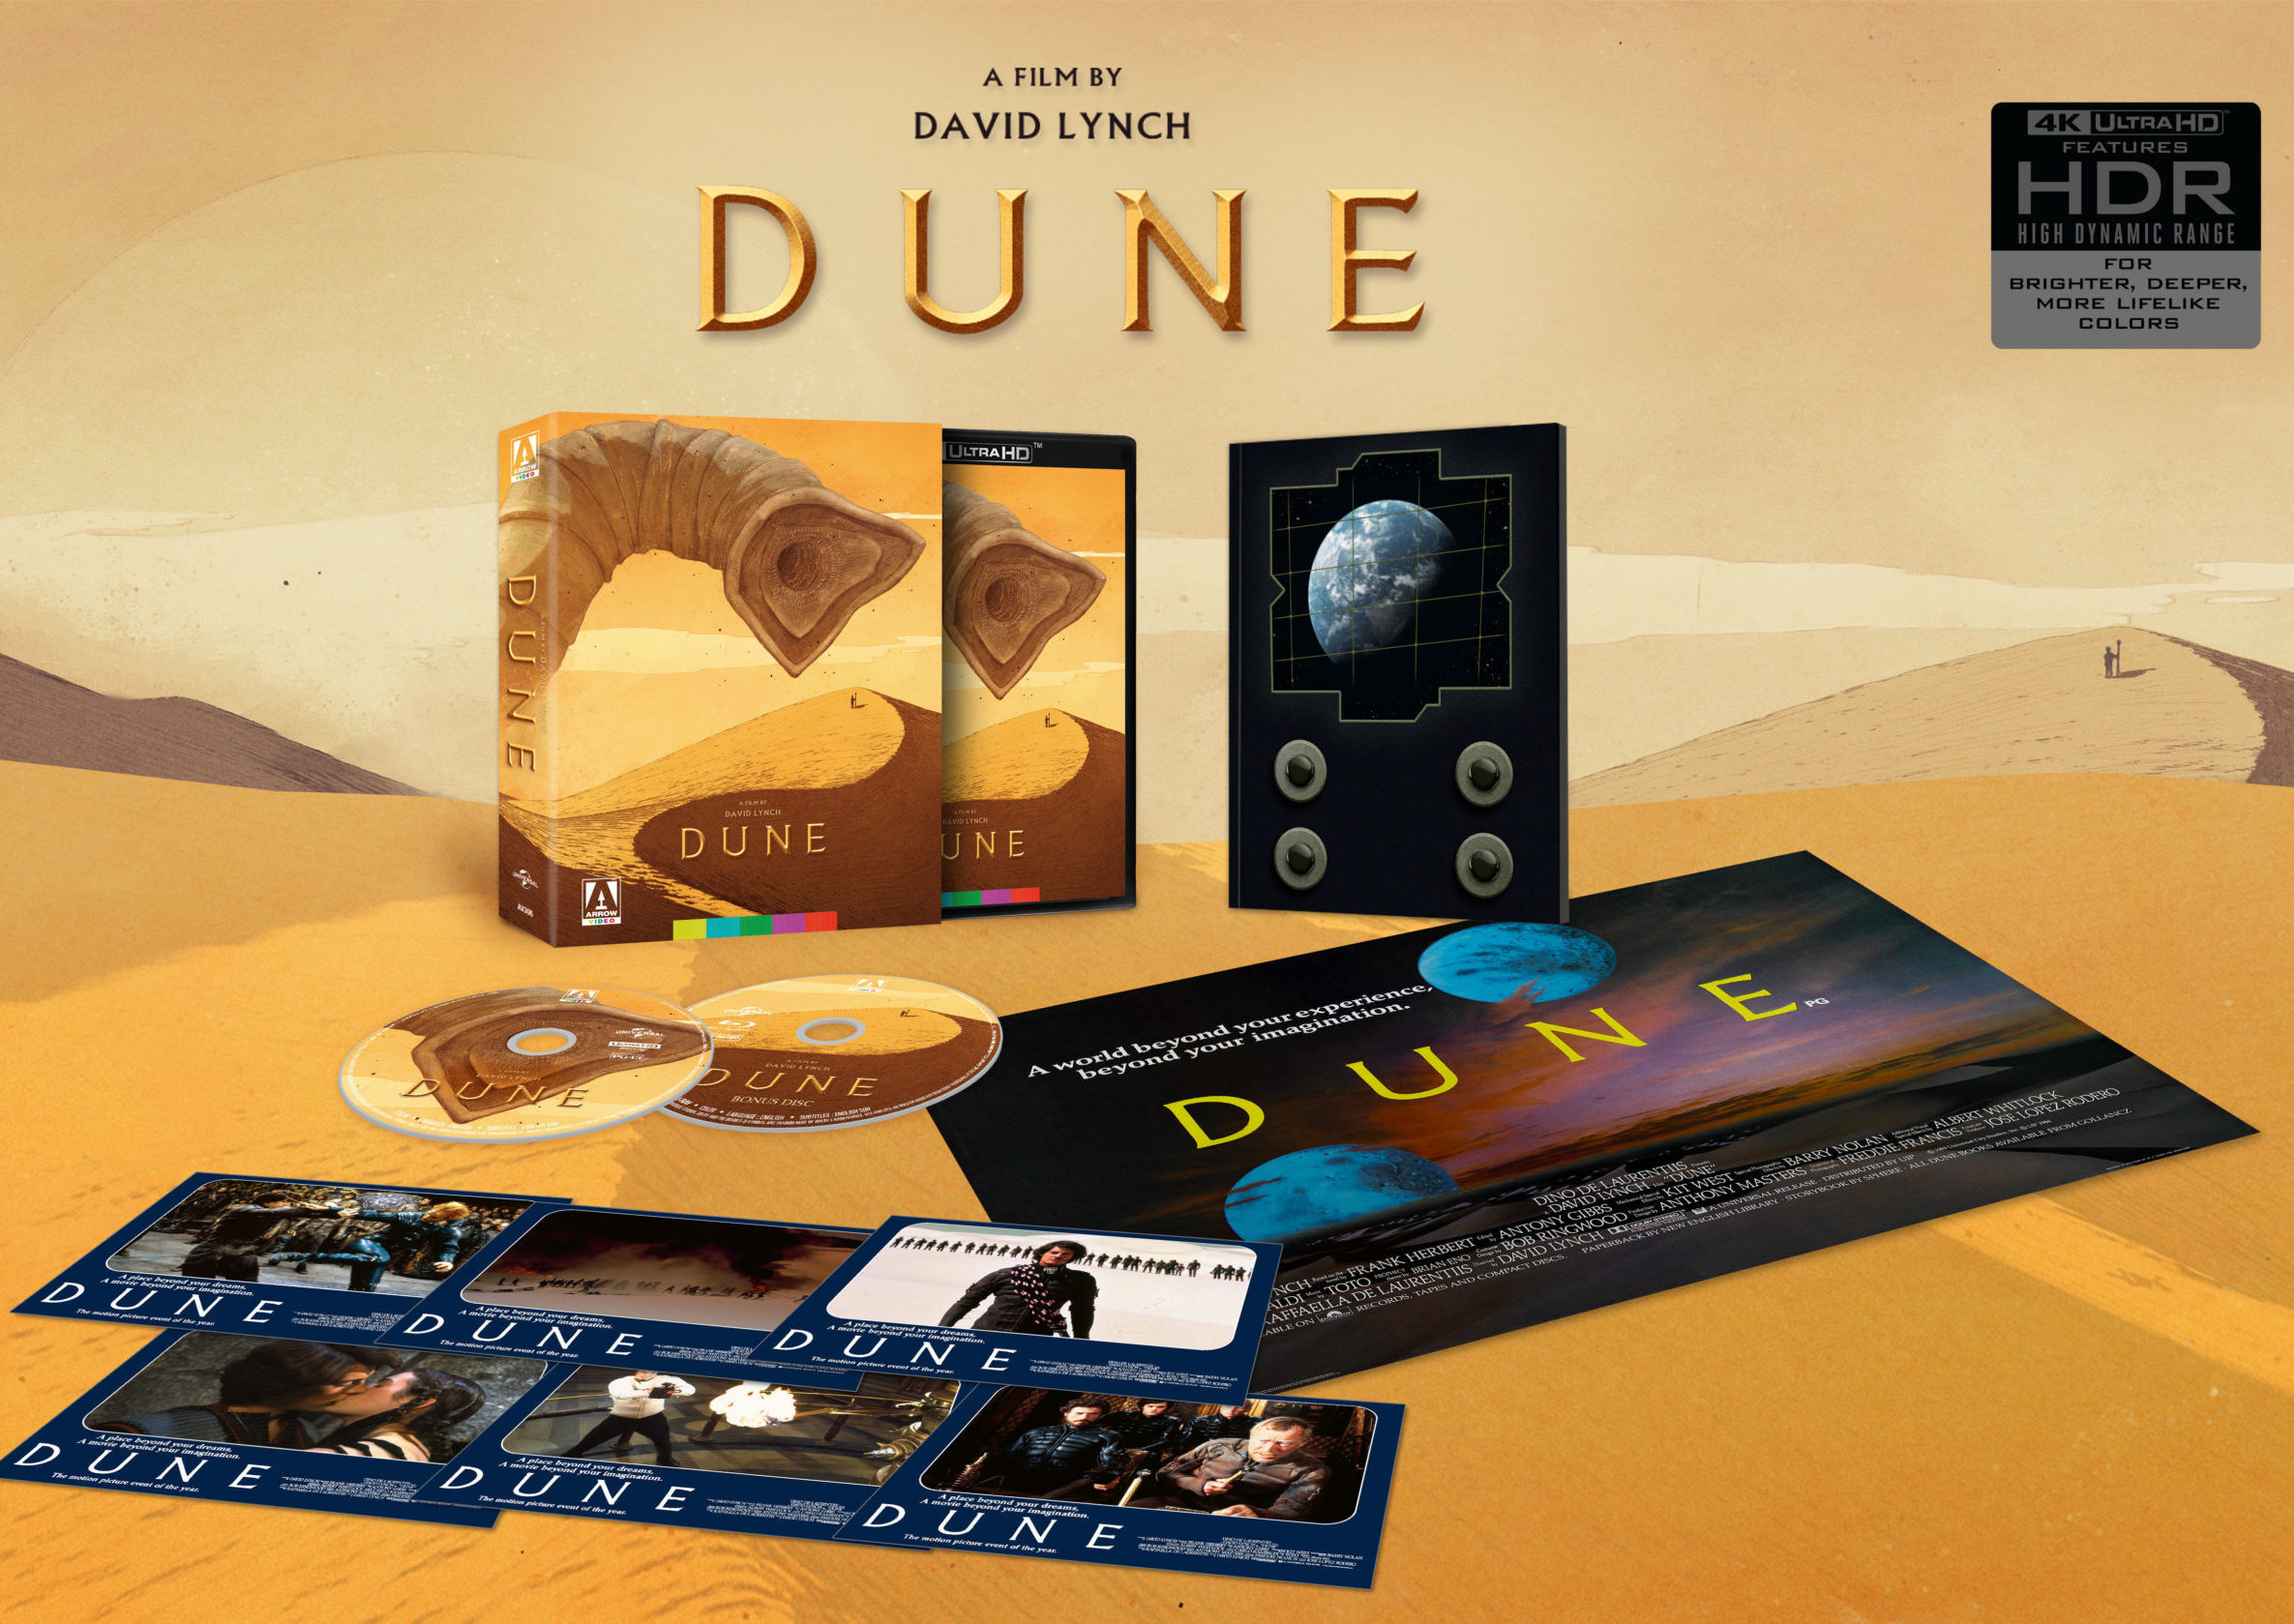 Dune 1984 Limited Edition 4k Blu-ray open